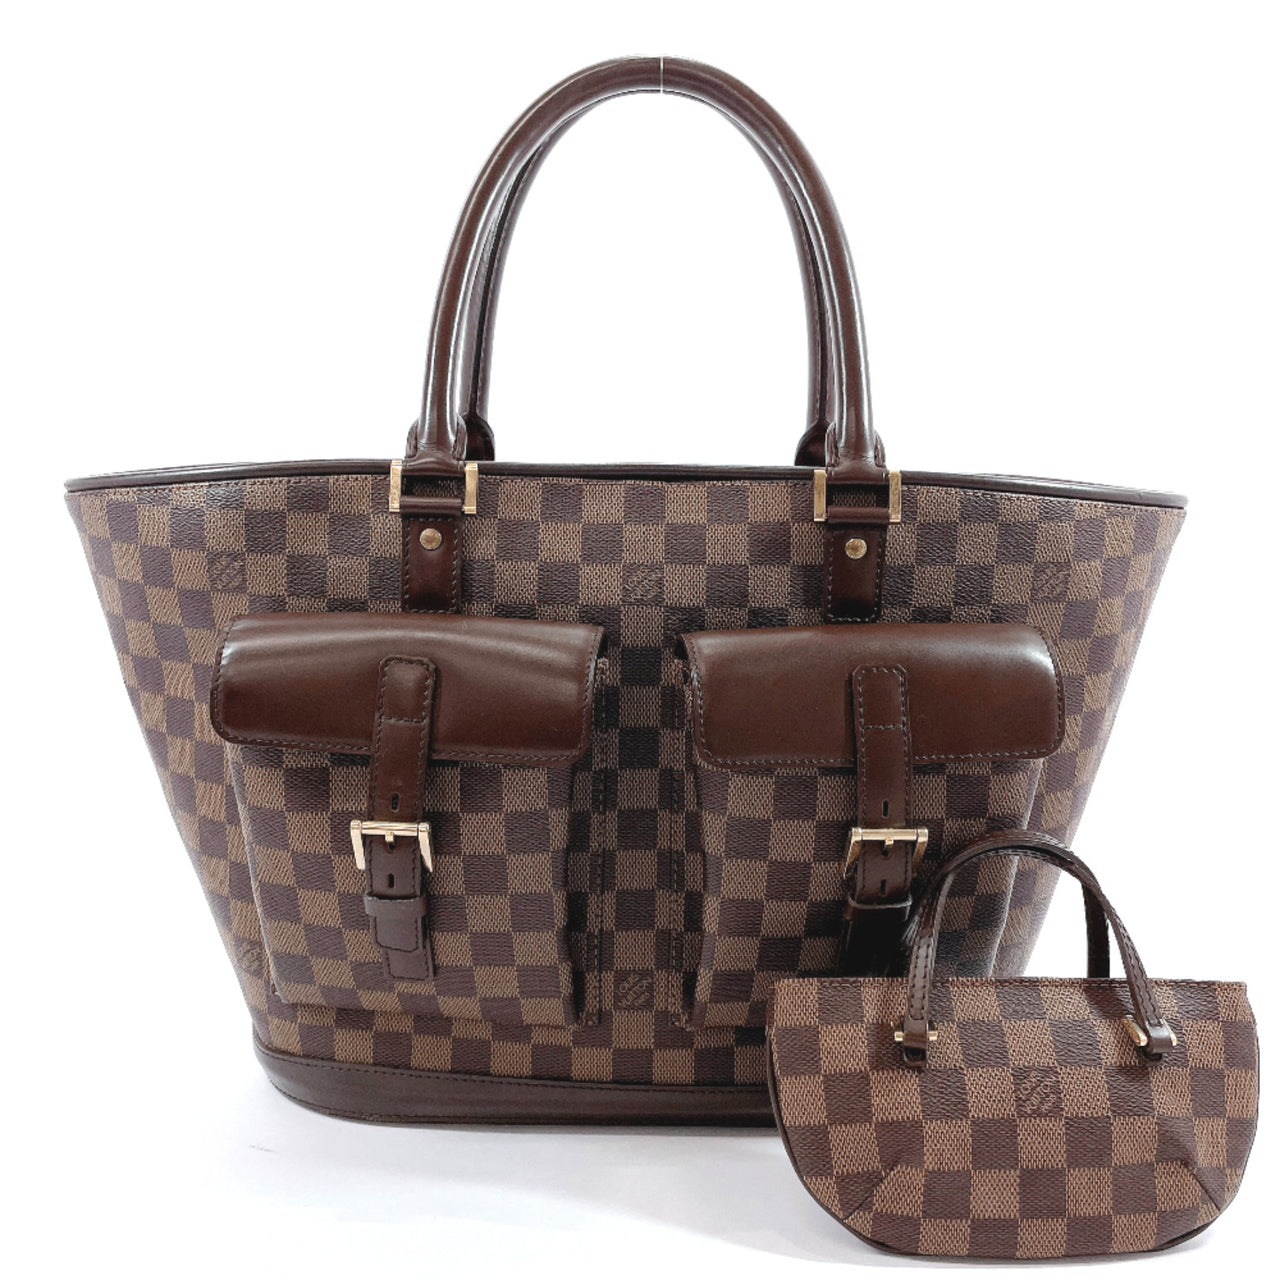 LOUIS VUITTON Tote Bag N51120 Manosque GM Damier canvas Brown Women Used